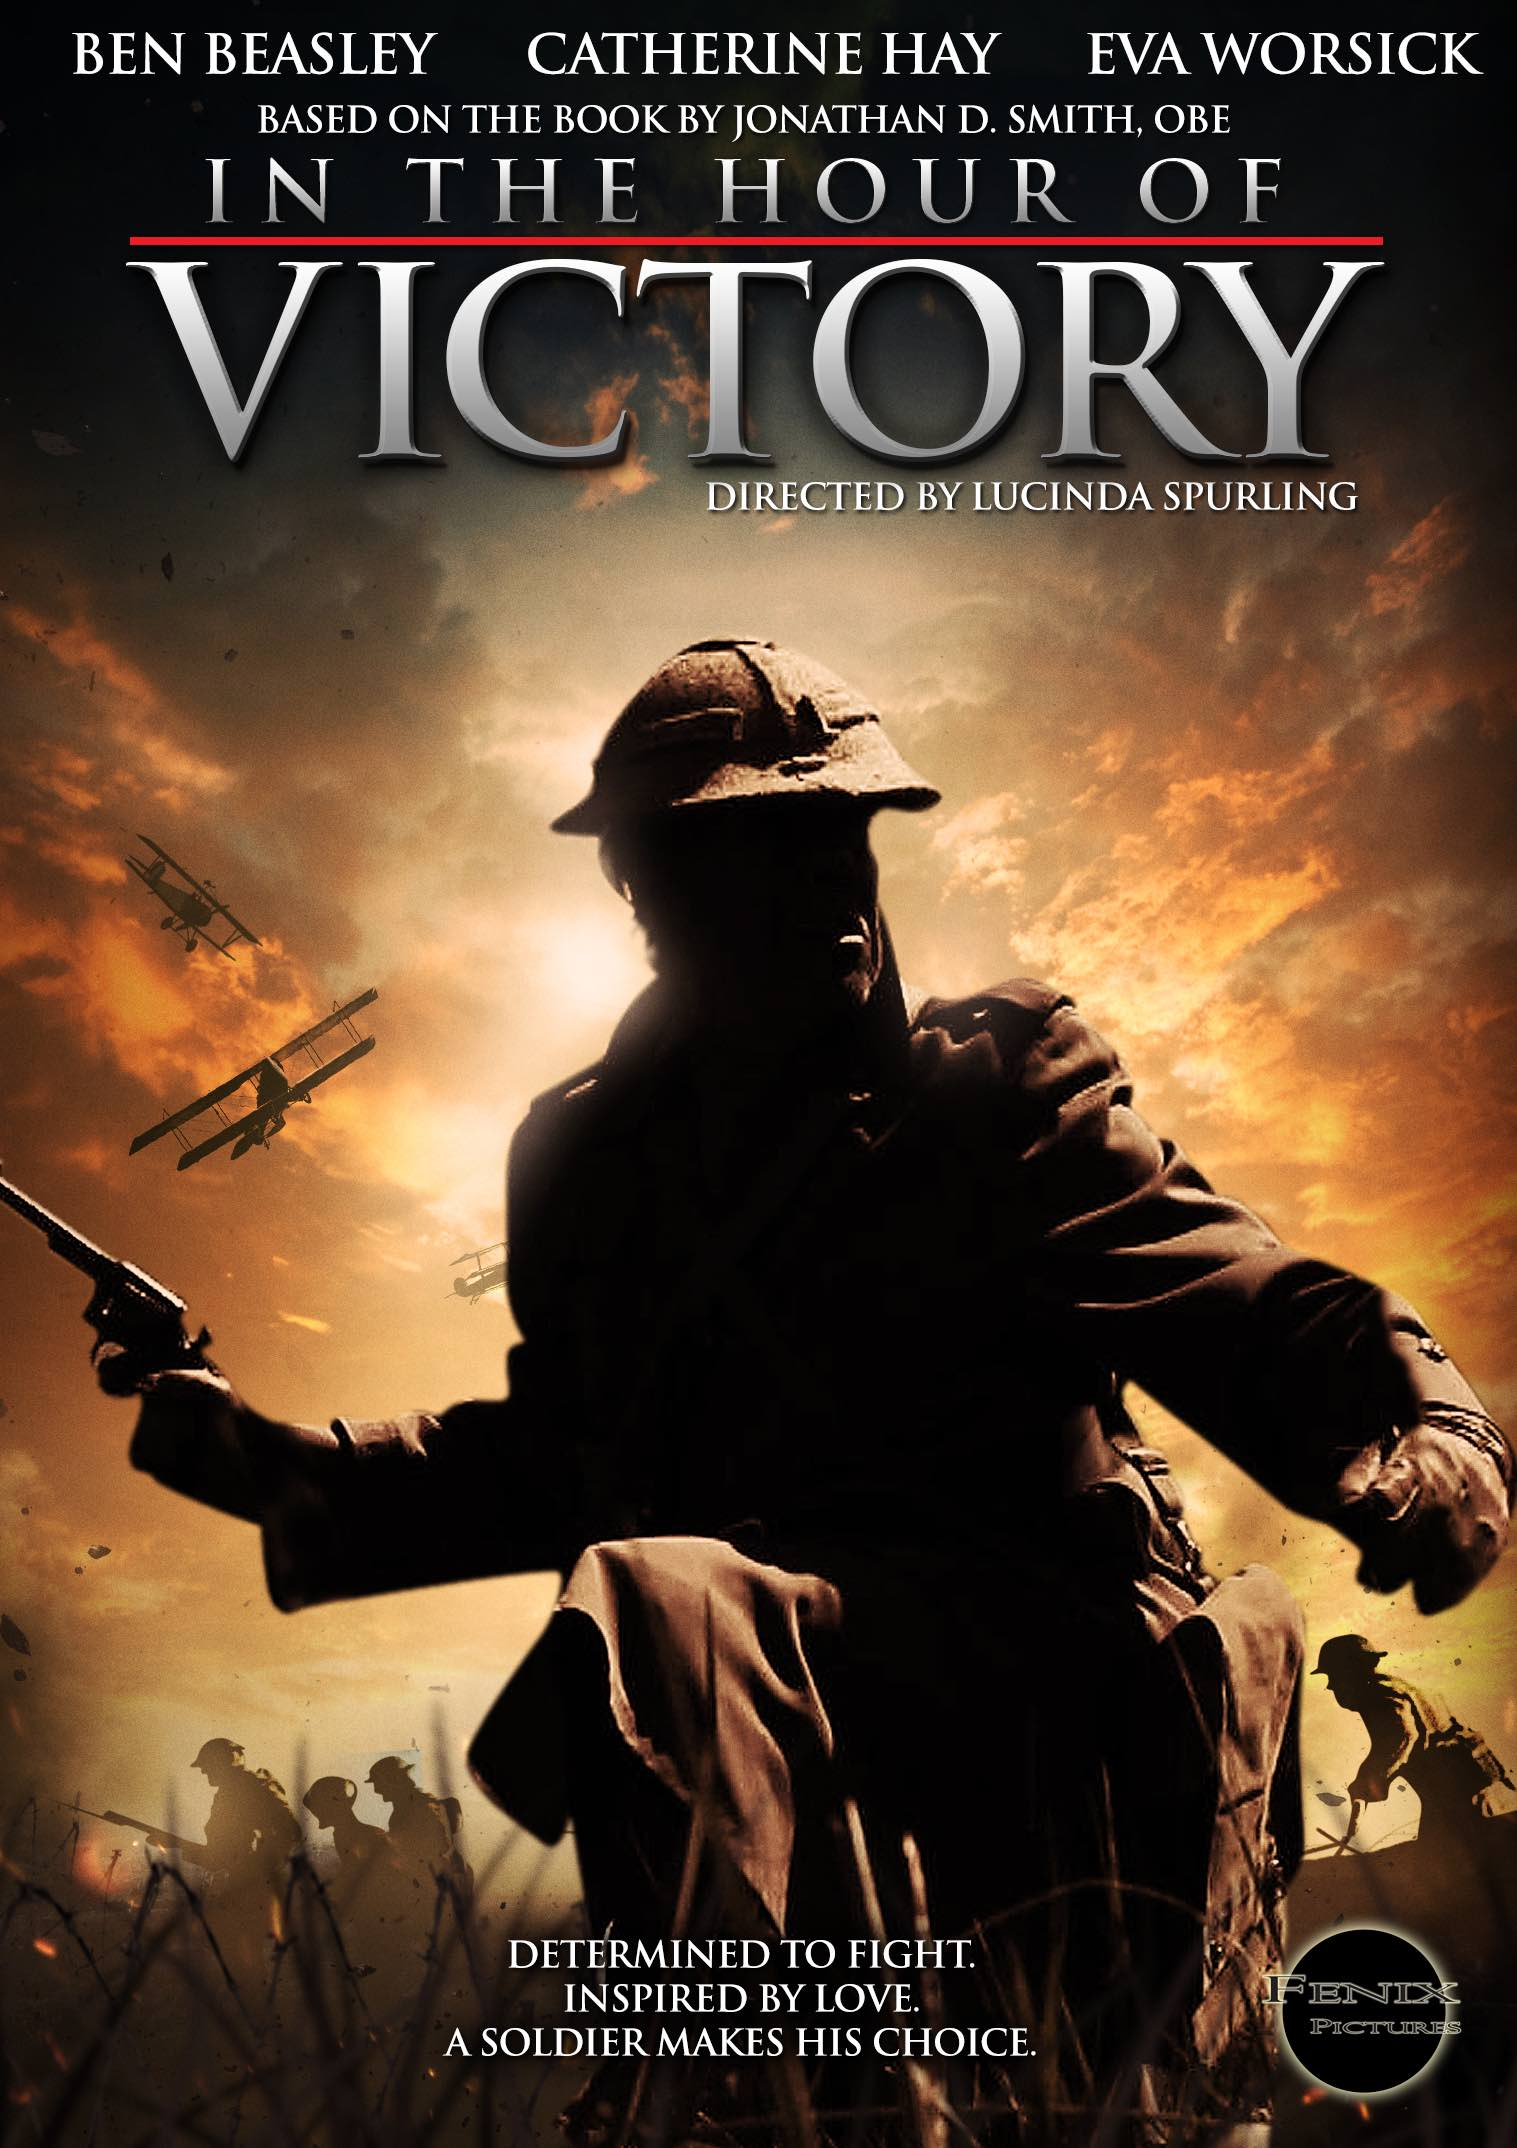 IN THE HOUR OF VICTORY(2013) - Untouched for fifty years, a family finds a bundle of letters setting them on a journey into their past, and the rediscovery of a tragic love story amid the turmoil of World War IIBest Director Award: Southampton Film Festival